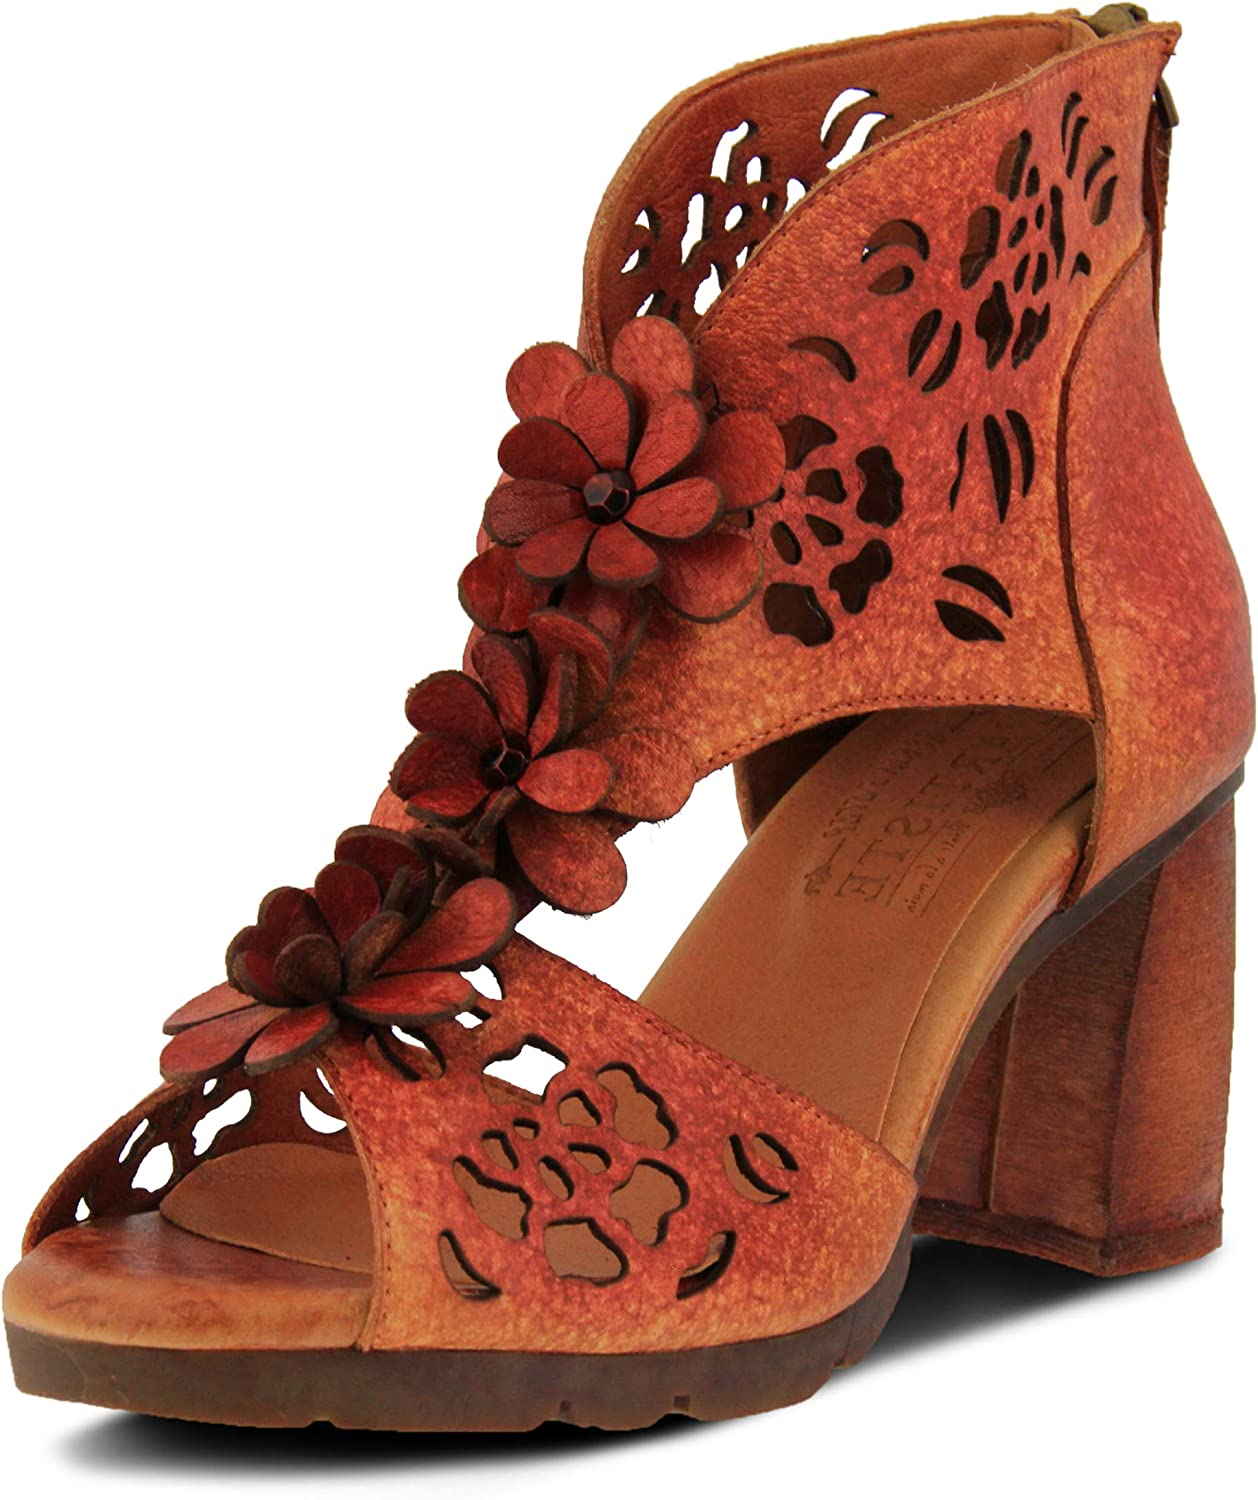 Manufacturer regenerated product Spring Max 41% OFF Step L`Artiste Women's Shelly